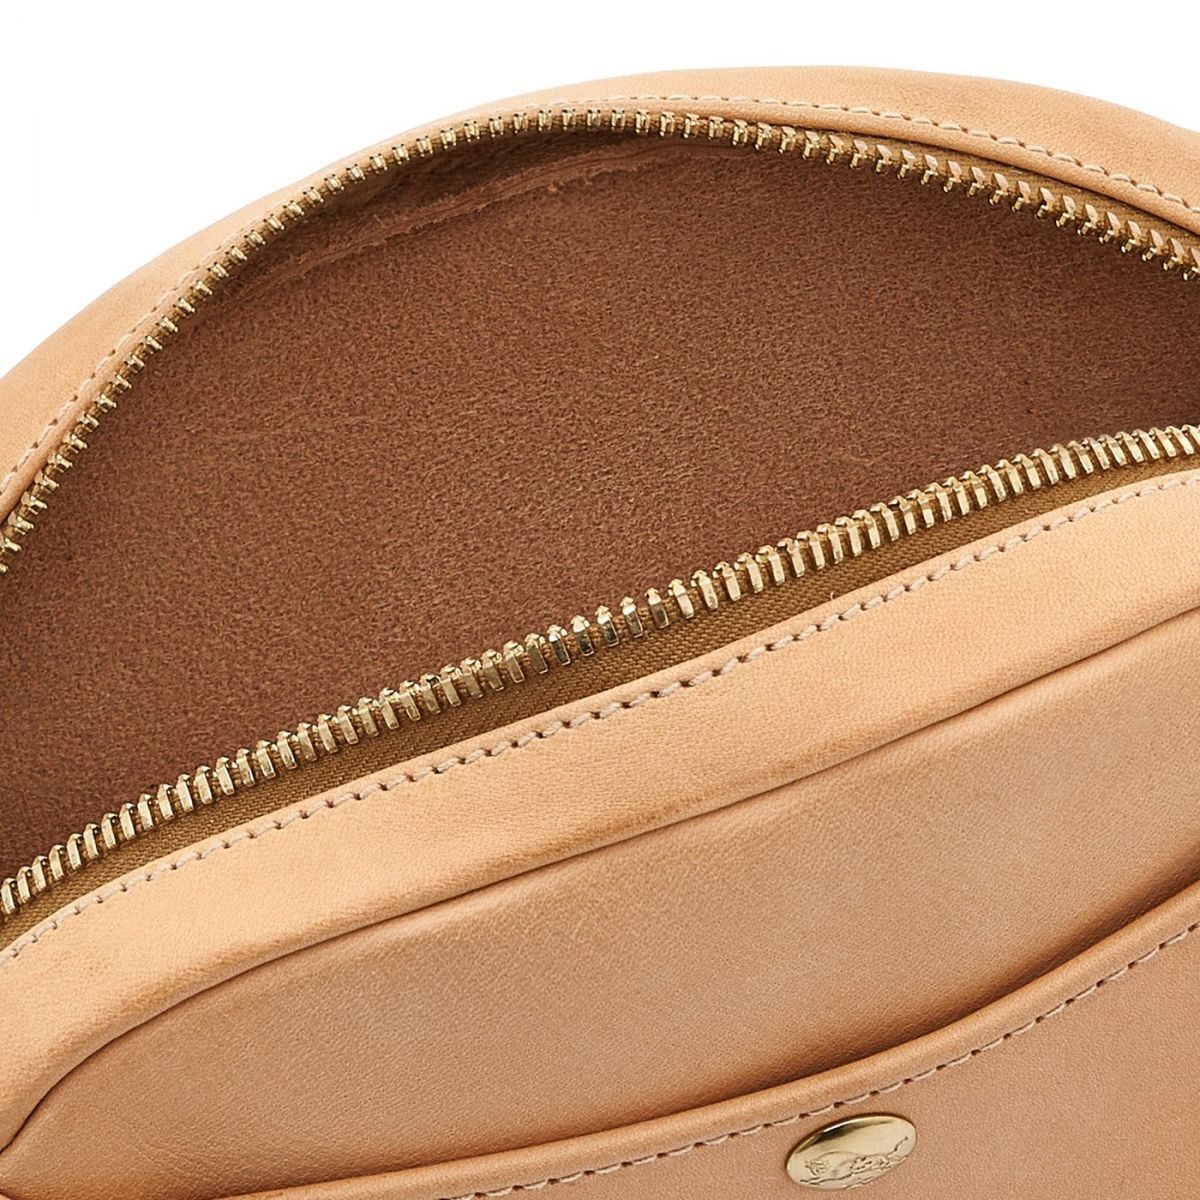 Women's Crossbody Bag in Cowhide Leather color Natural - Rubino line BCR242 | Details